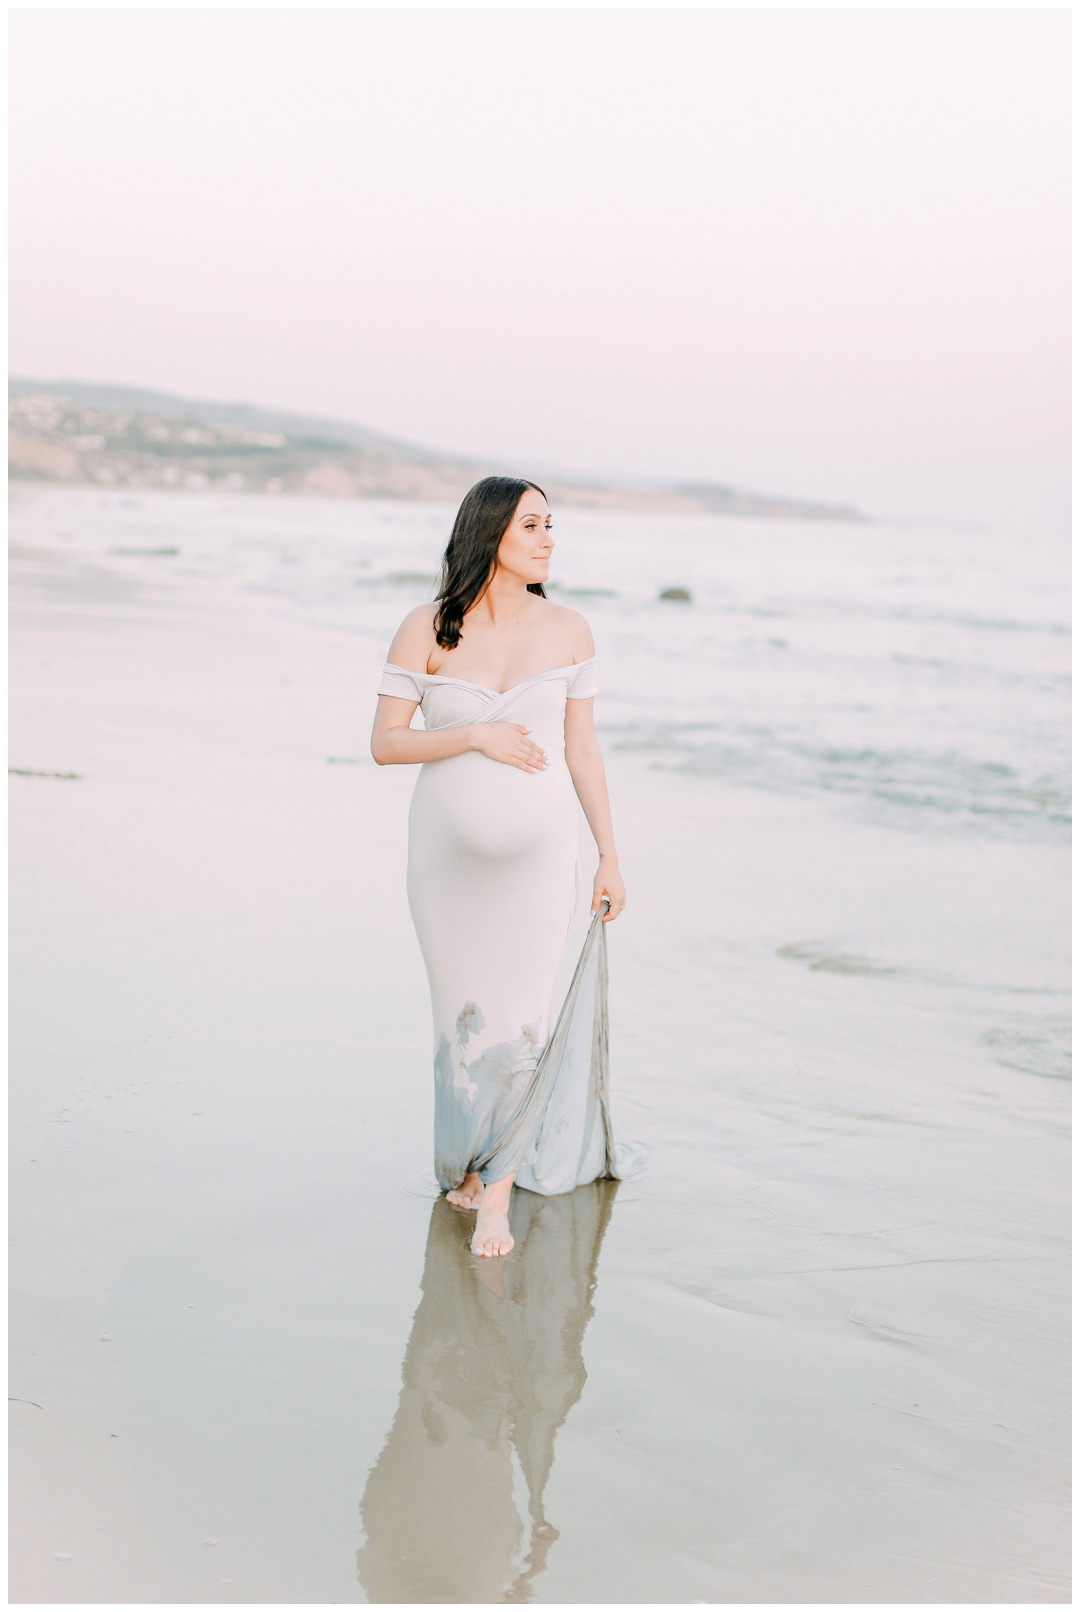 Newport_Beach_Maternity_Photographer_The_Merrill_Maternity_Session_Newport_Beach_Maternity_Photography_Orange_County_Photography_Cori_Kleckner_Photography_Orange_County_Beach_Photography_The_Ritz_Carlton_Laguna_Niguel_Resort_ Maternity_Session__1780.jpg